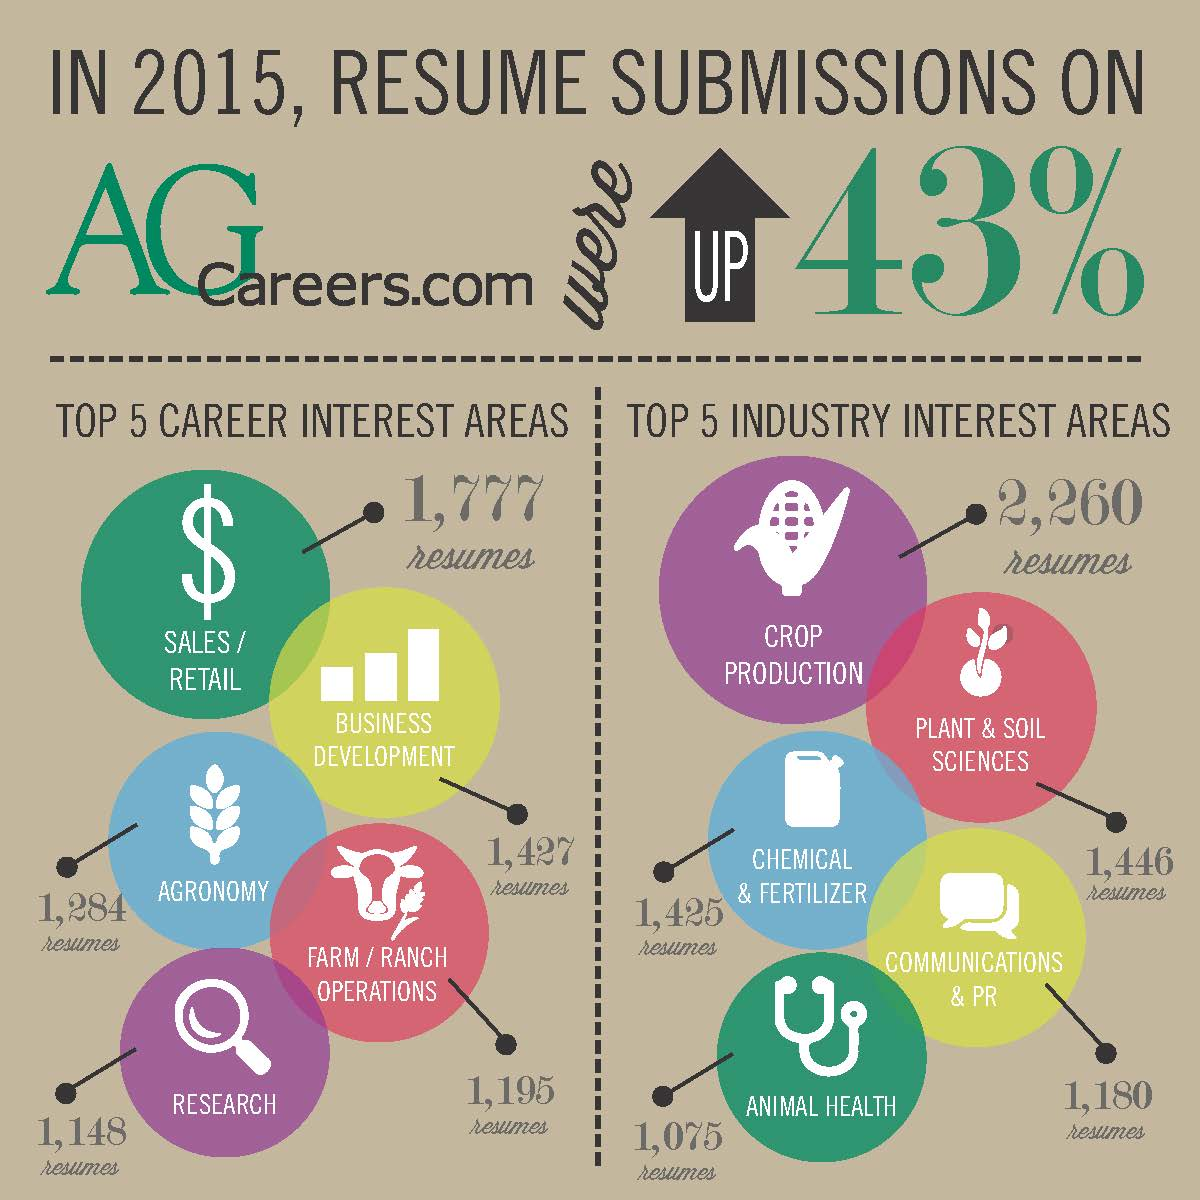 Infographic- Title: 2015 Resumes on AgCareers.com Image Text:  In 2015, resume submissions on AgCareers.com were up 43%.  Top 5 career interest areas:  sales/retail 1,777 resumes, business development 1,427 resumes, agronomy 1,284 resumes, farm/ranch operations 1,195 resumes, research 1,148 resumes.   Top 5 industry interest areas:  crop production 2,260 resumes, plant & soil sciences 1,446 resumes, chemical & fertilizer 1,425 resumes, communications & pr 1,180 resumes, animal health 1,075 resumes.